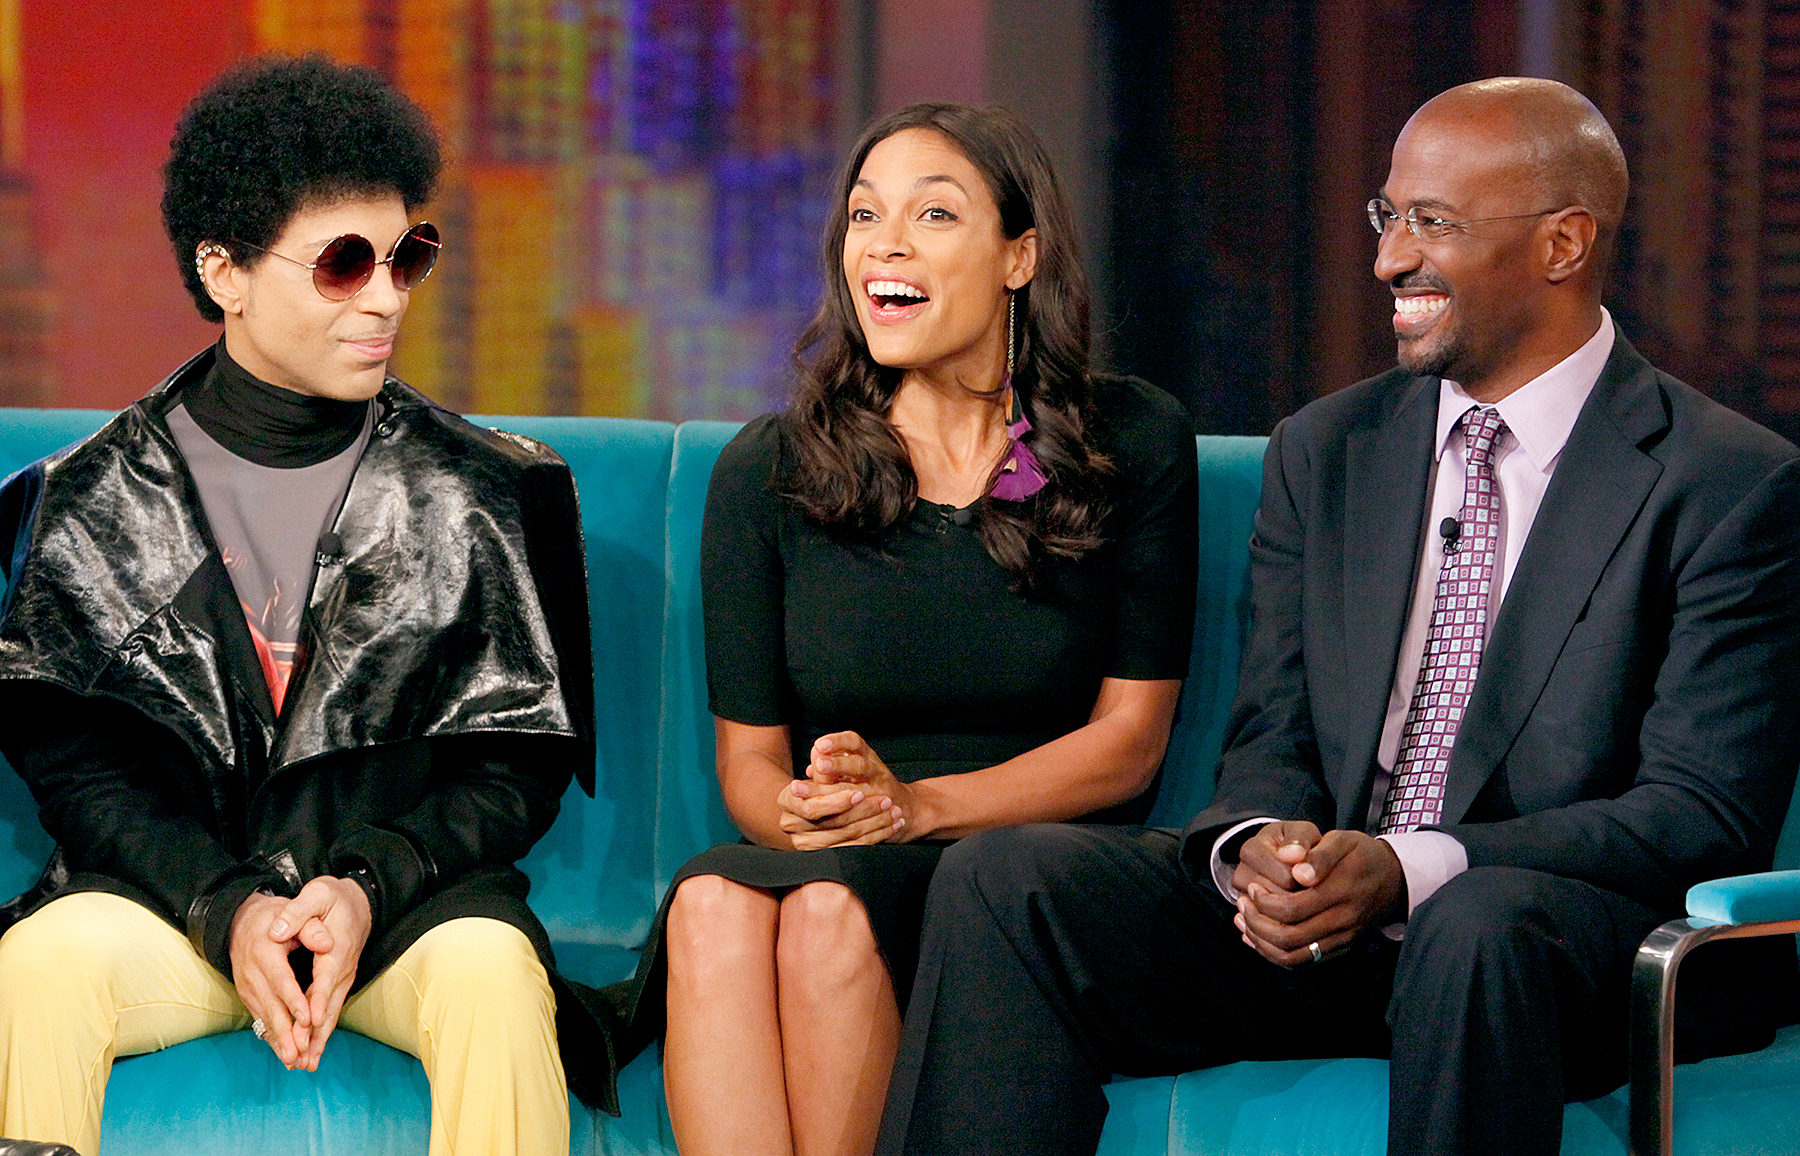 Prince appeared with actress Rosario Dawson and civil rights attorney/activist Van Jones on 'The View' in 2012.